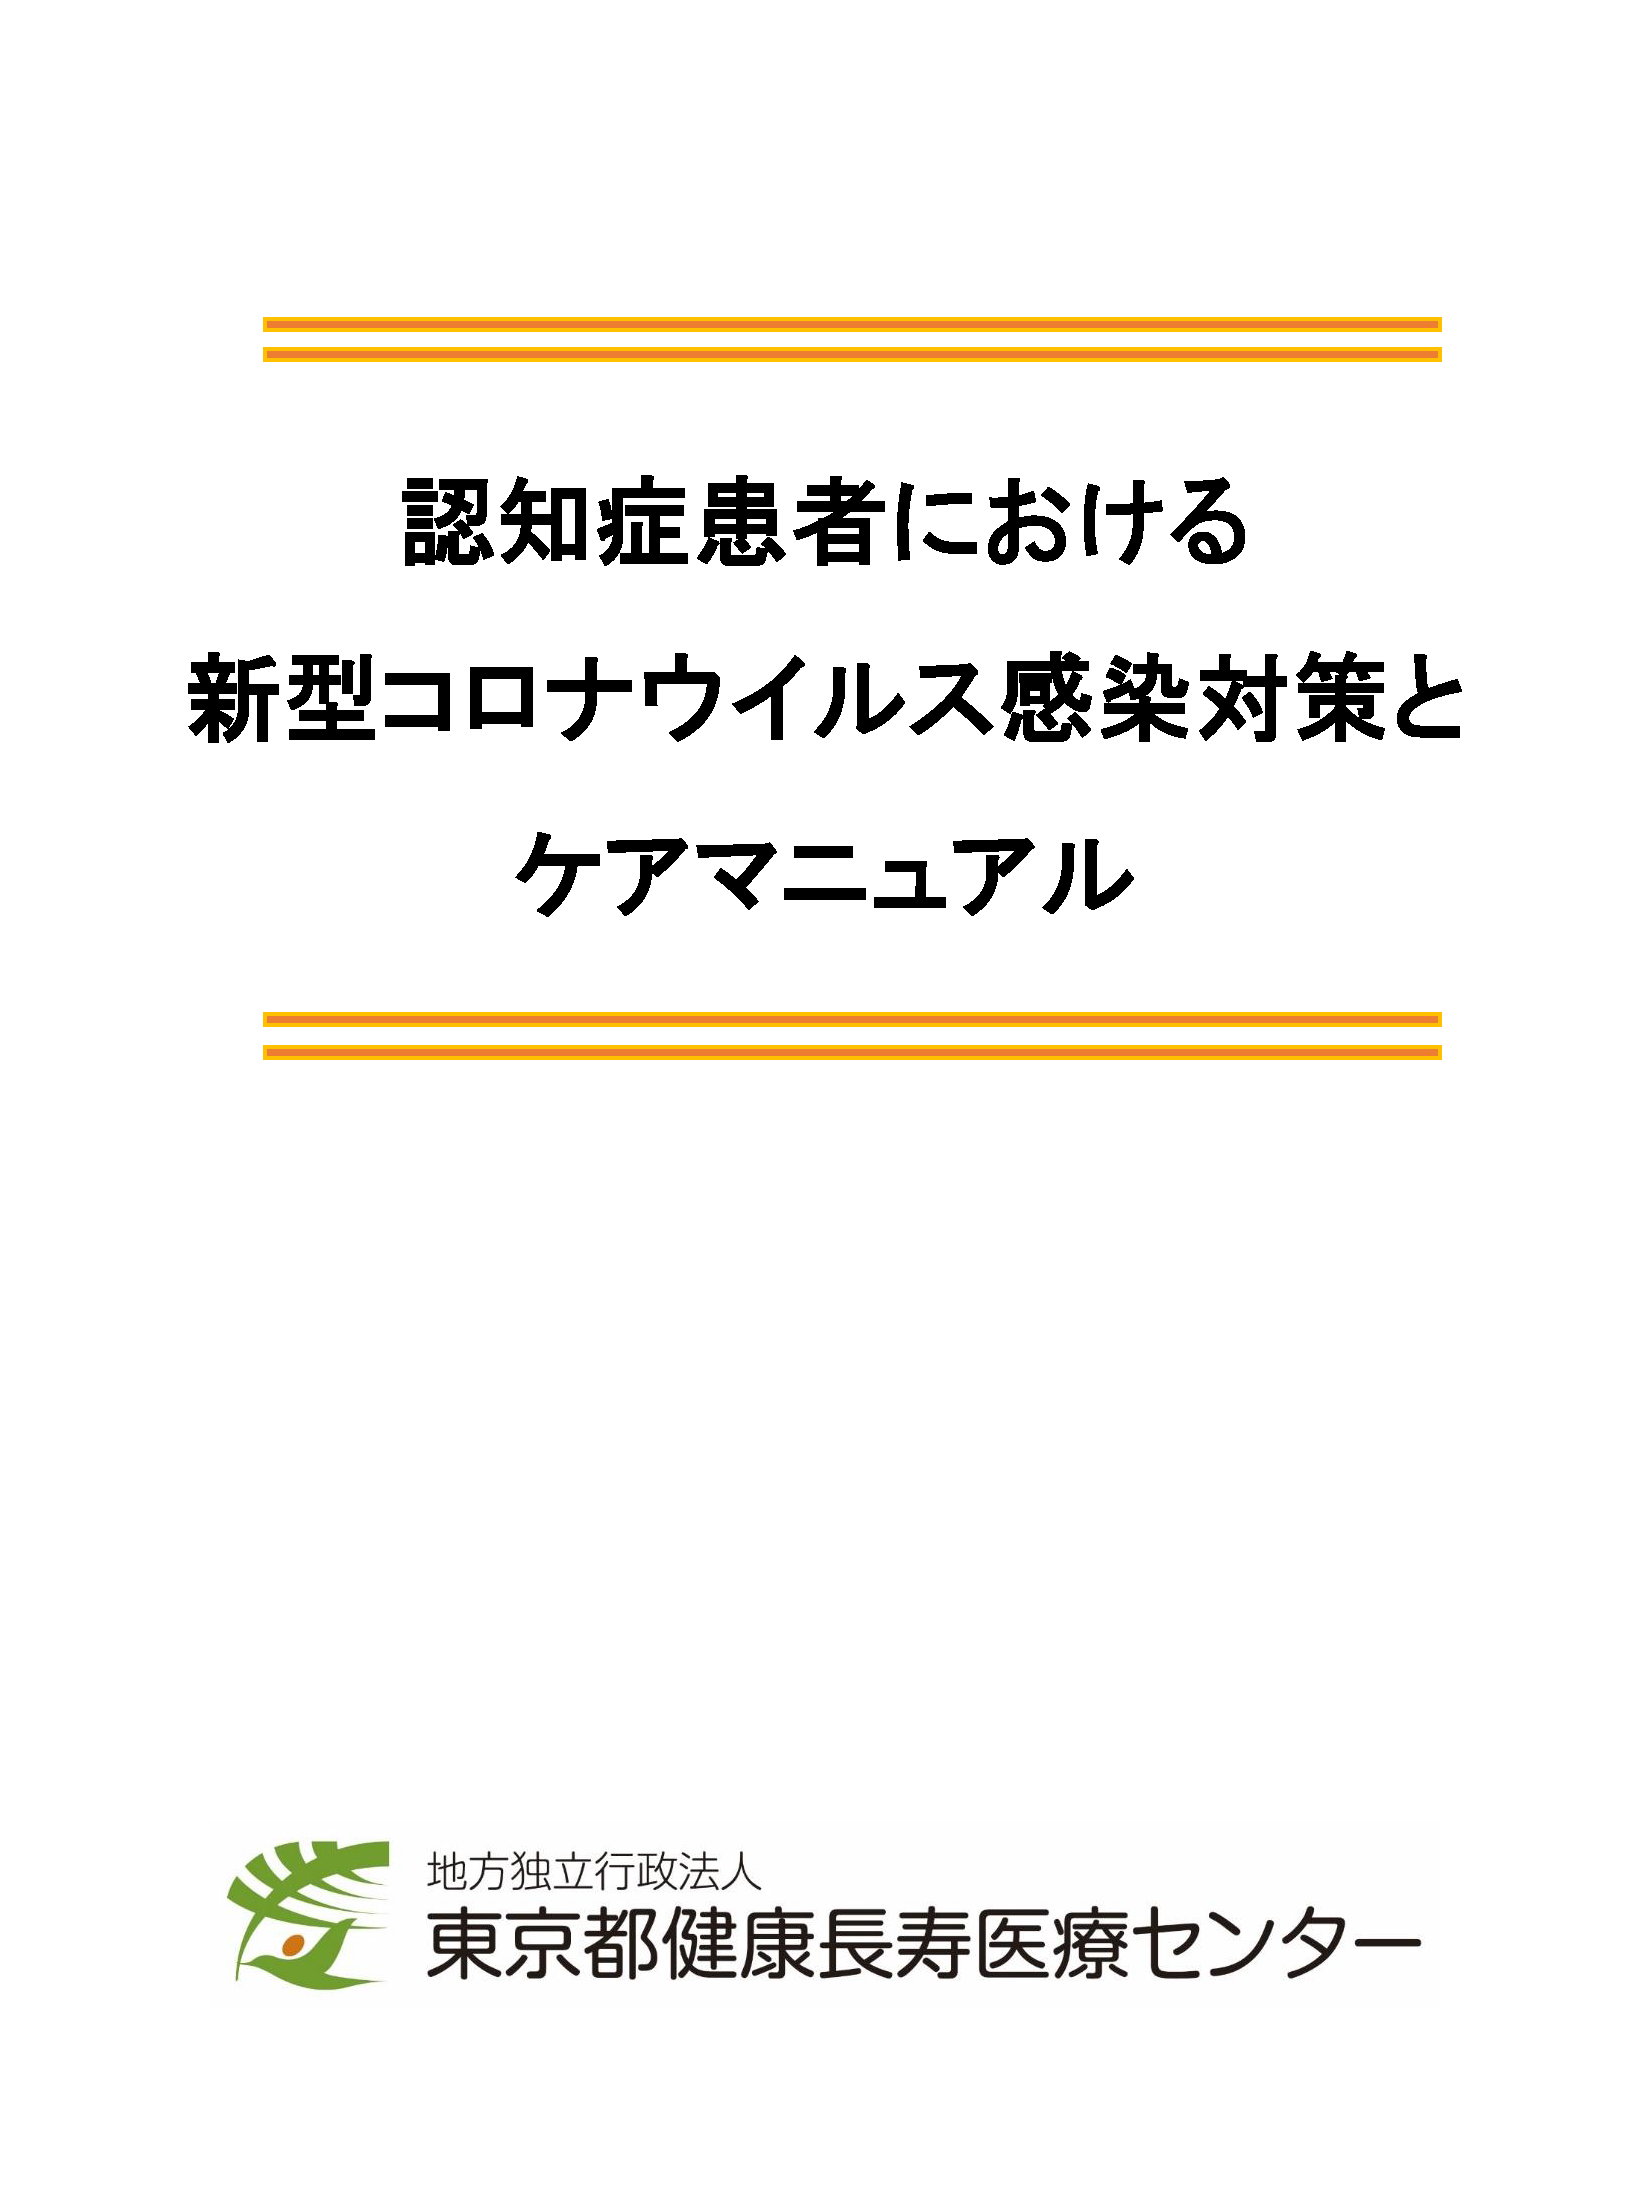 PowerPoint プレゼンテーション_ページ_1.png